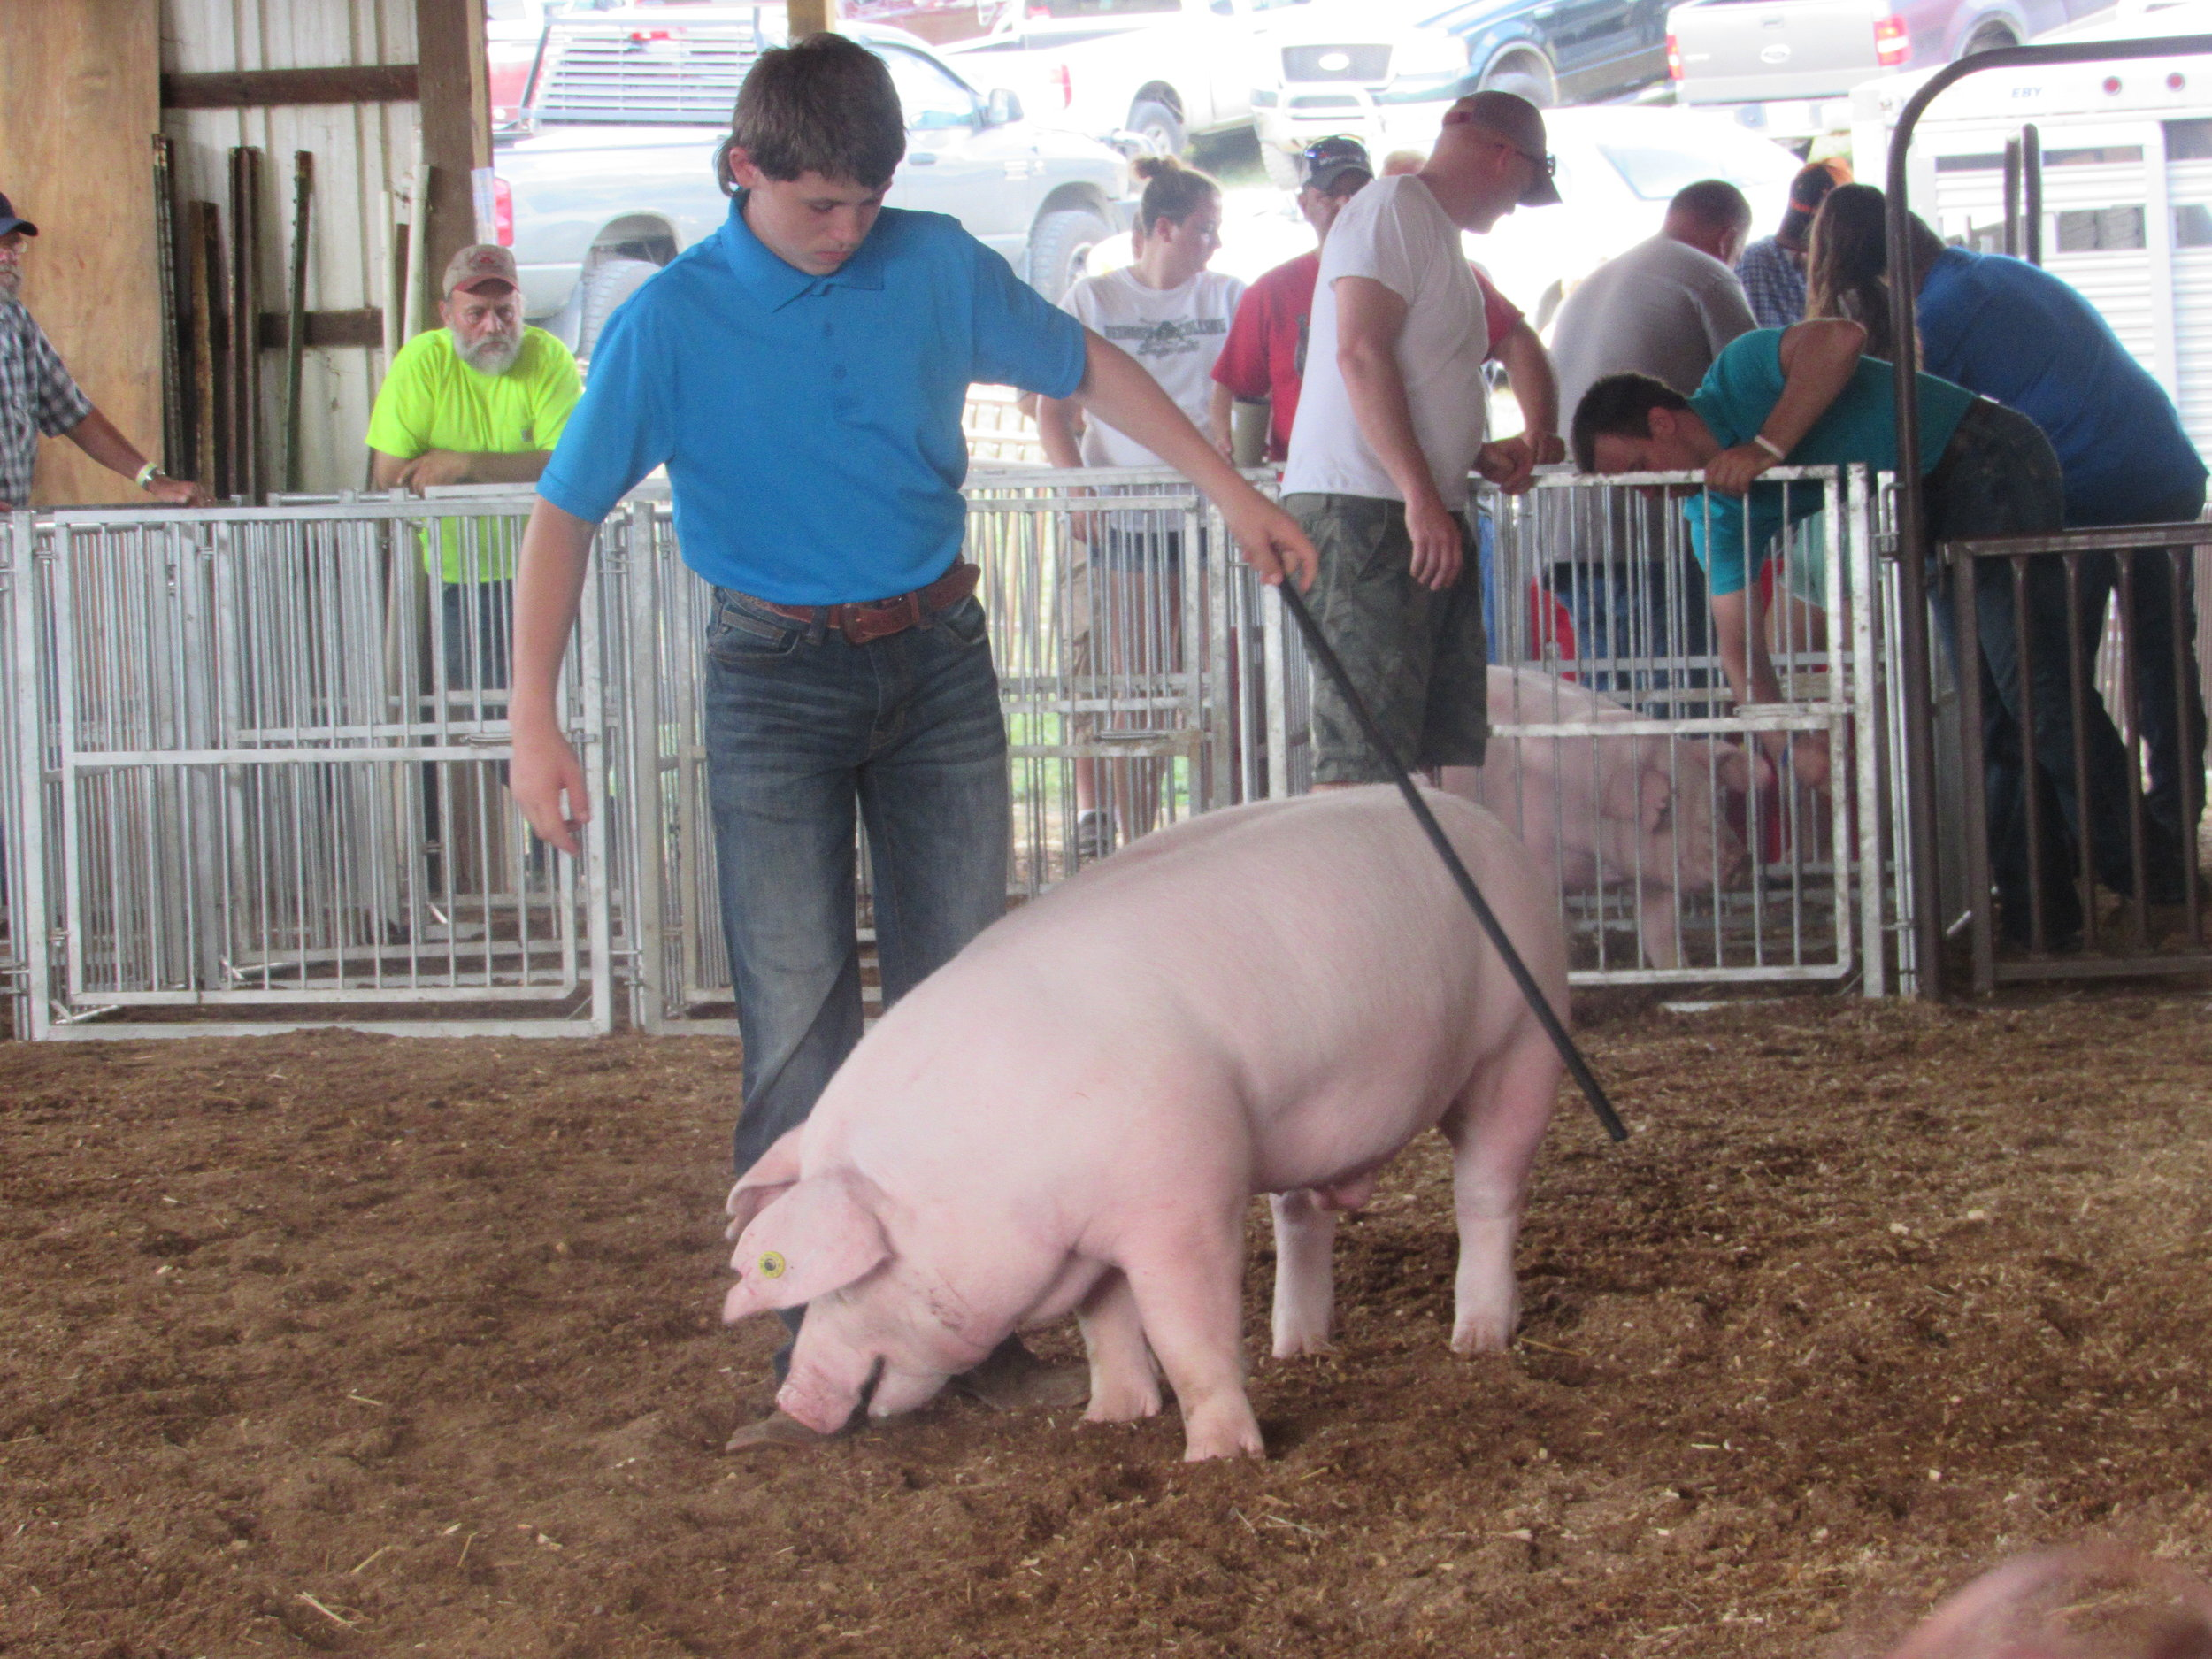 WEDNESDAY - SEPTEMBER 4 - 6:00 pm…………….Judging Market Swine followed by4-H & FFA Showmanship and FittingContest – SA6:00 pm…………….Bill Horner Magic Show - ST7:00 pm…………….DEMOLITION DERBY – Grandstand7:30 pm……………Bill Podish - ST